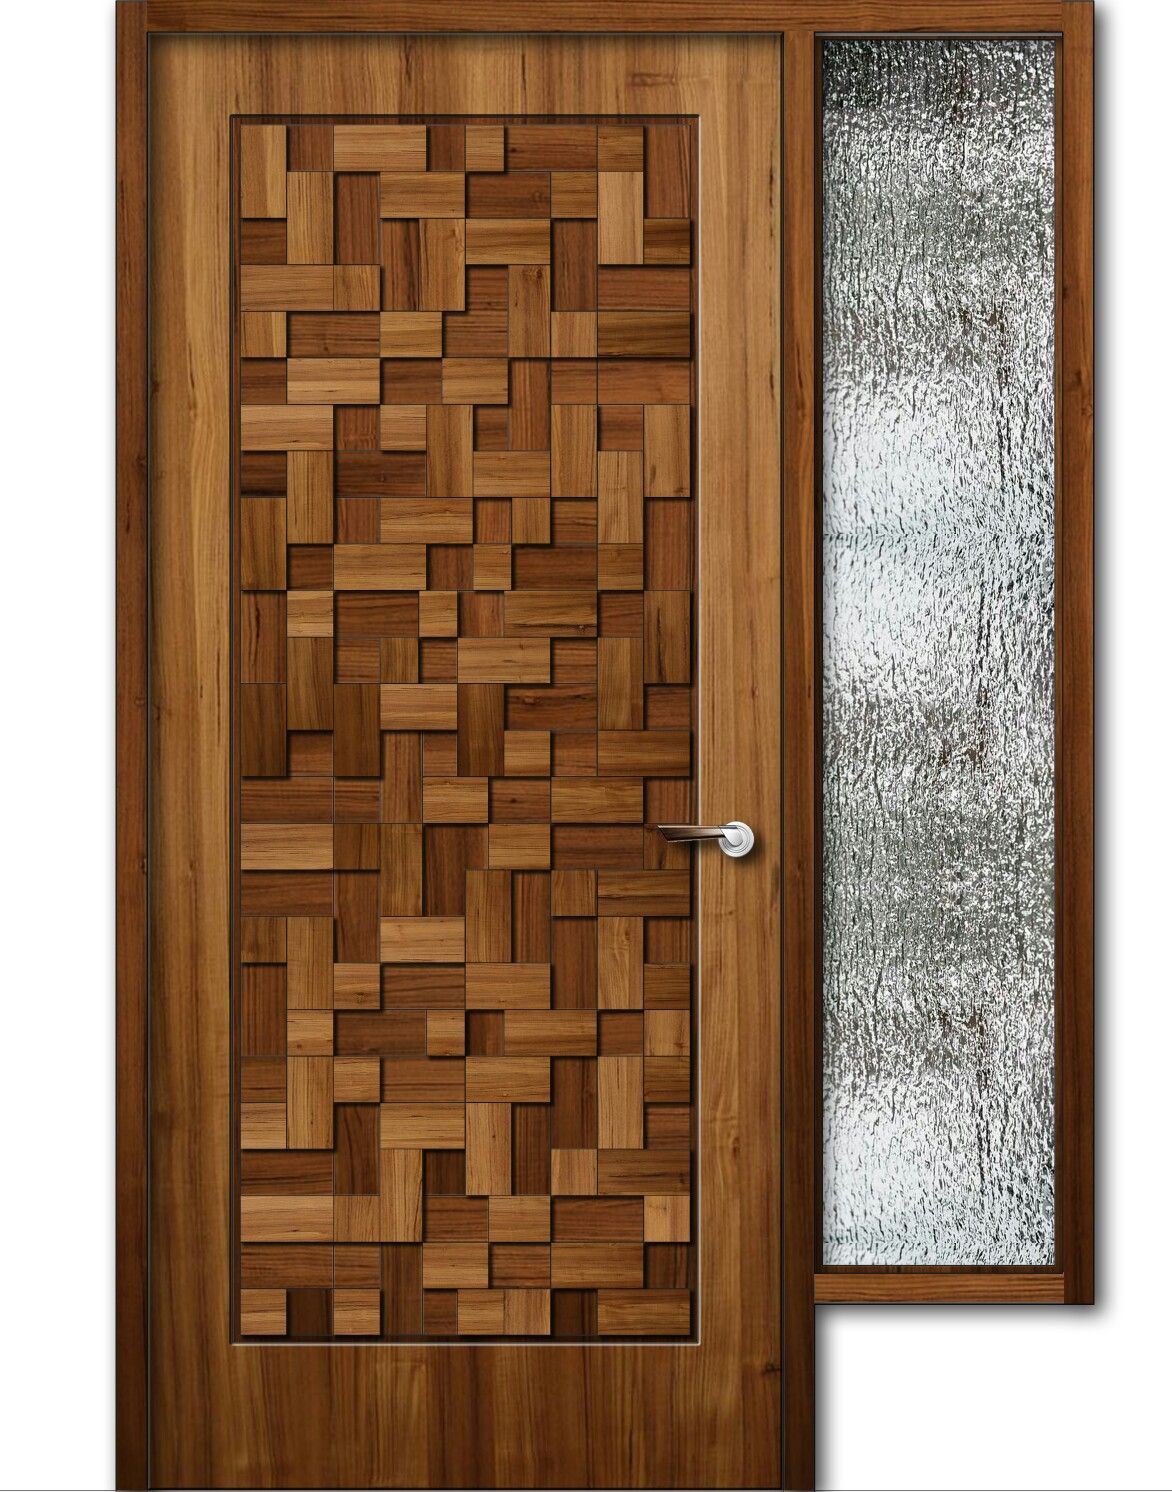 Teak wood finish wooden door with window 8feet height for Wood window door design